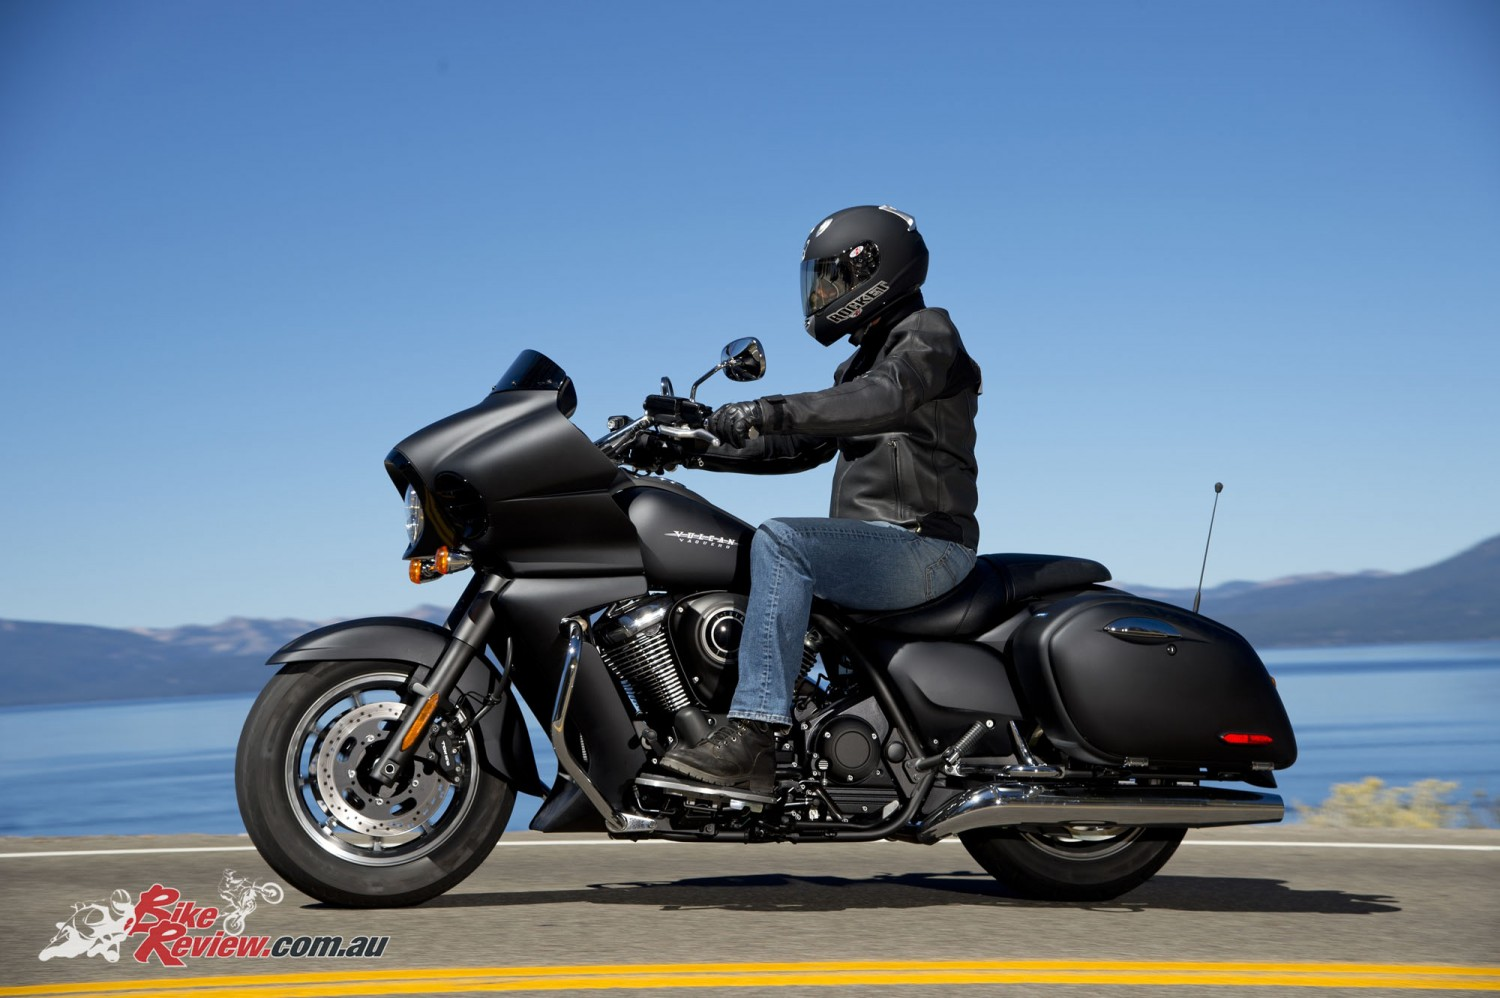 Honda Riding Gear >> Review: Kawasaki Vulcan 1700 Vaquero - Bike Review